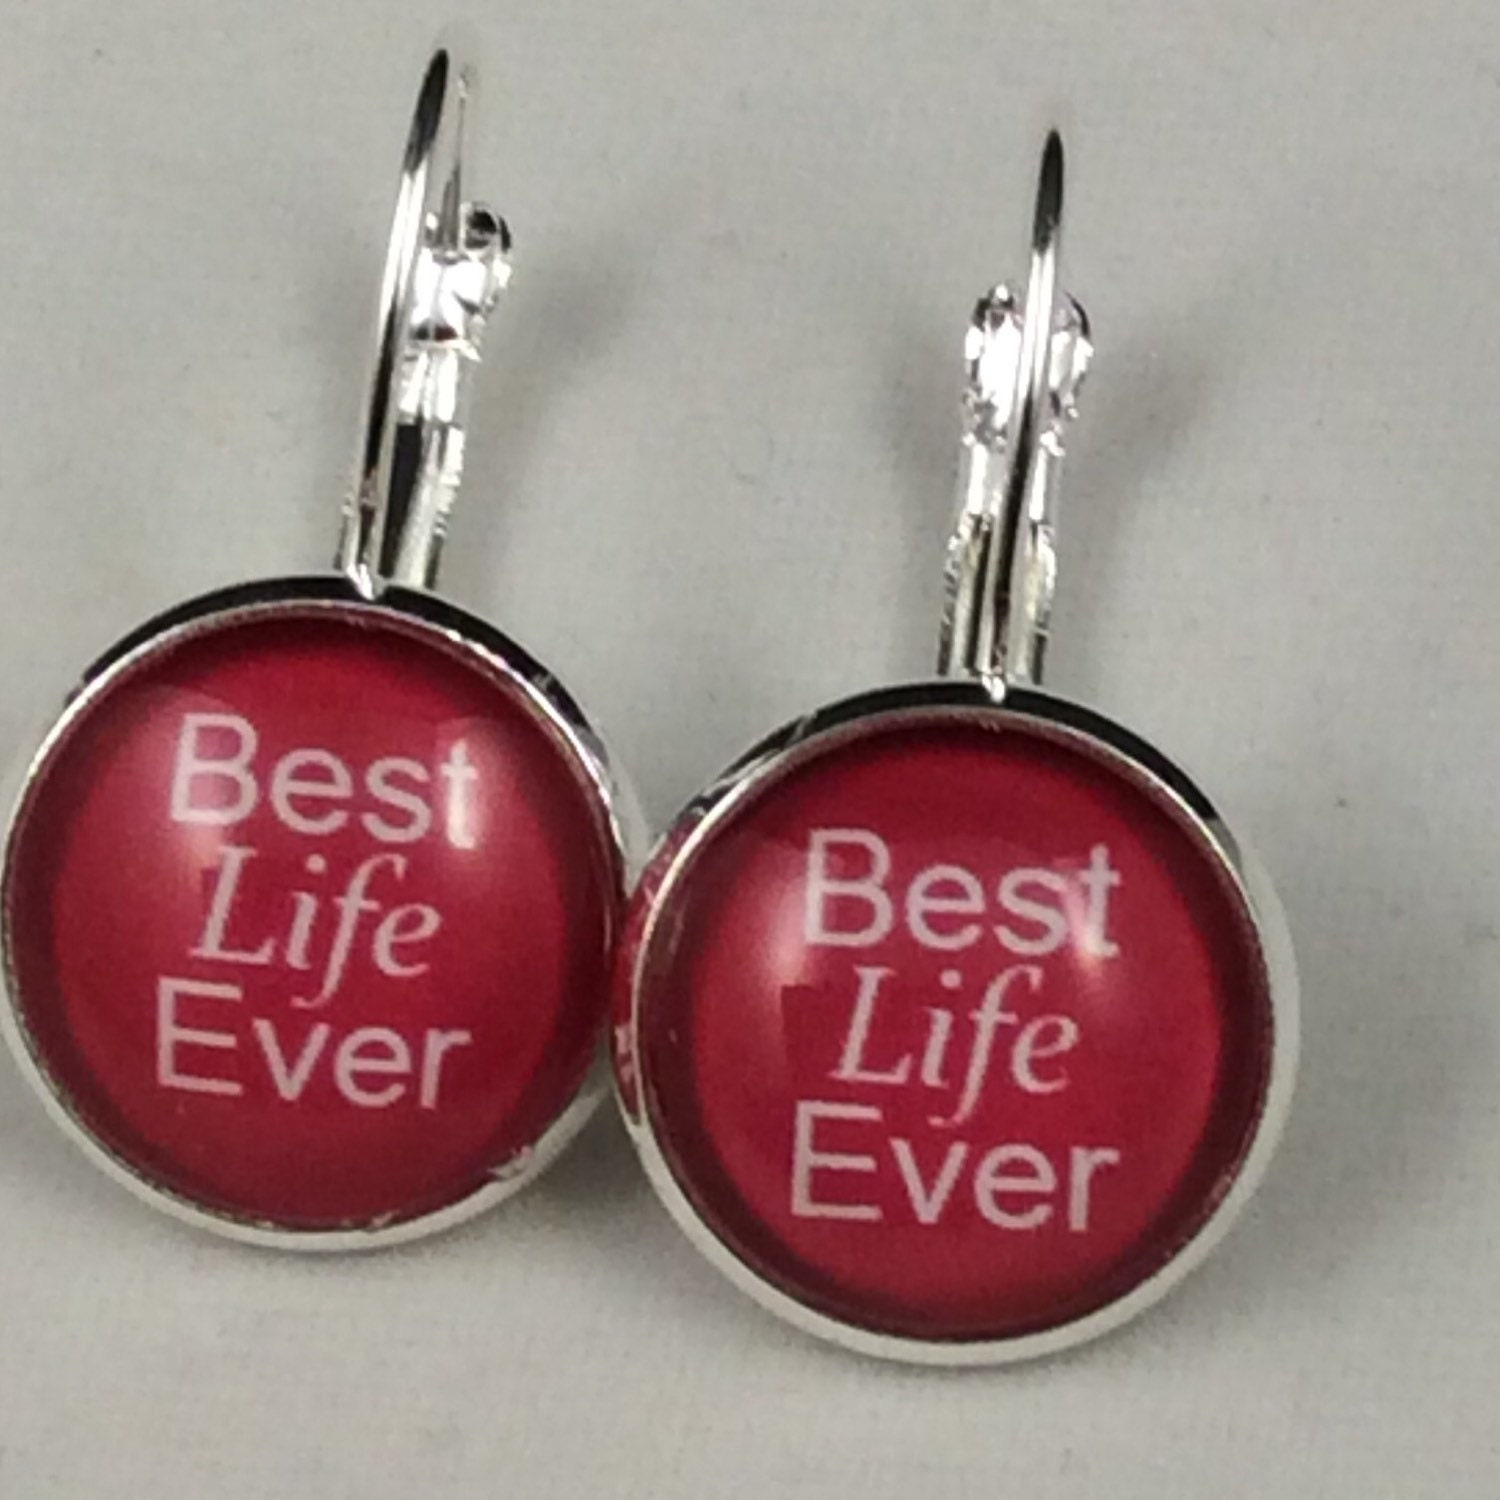 ae6a0b691 JW Best Life Ever Lever-Back Earrings 14mm Glass, Antique Brass or ...